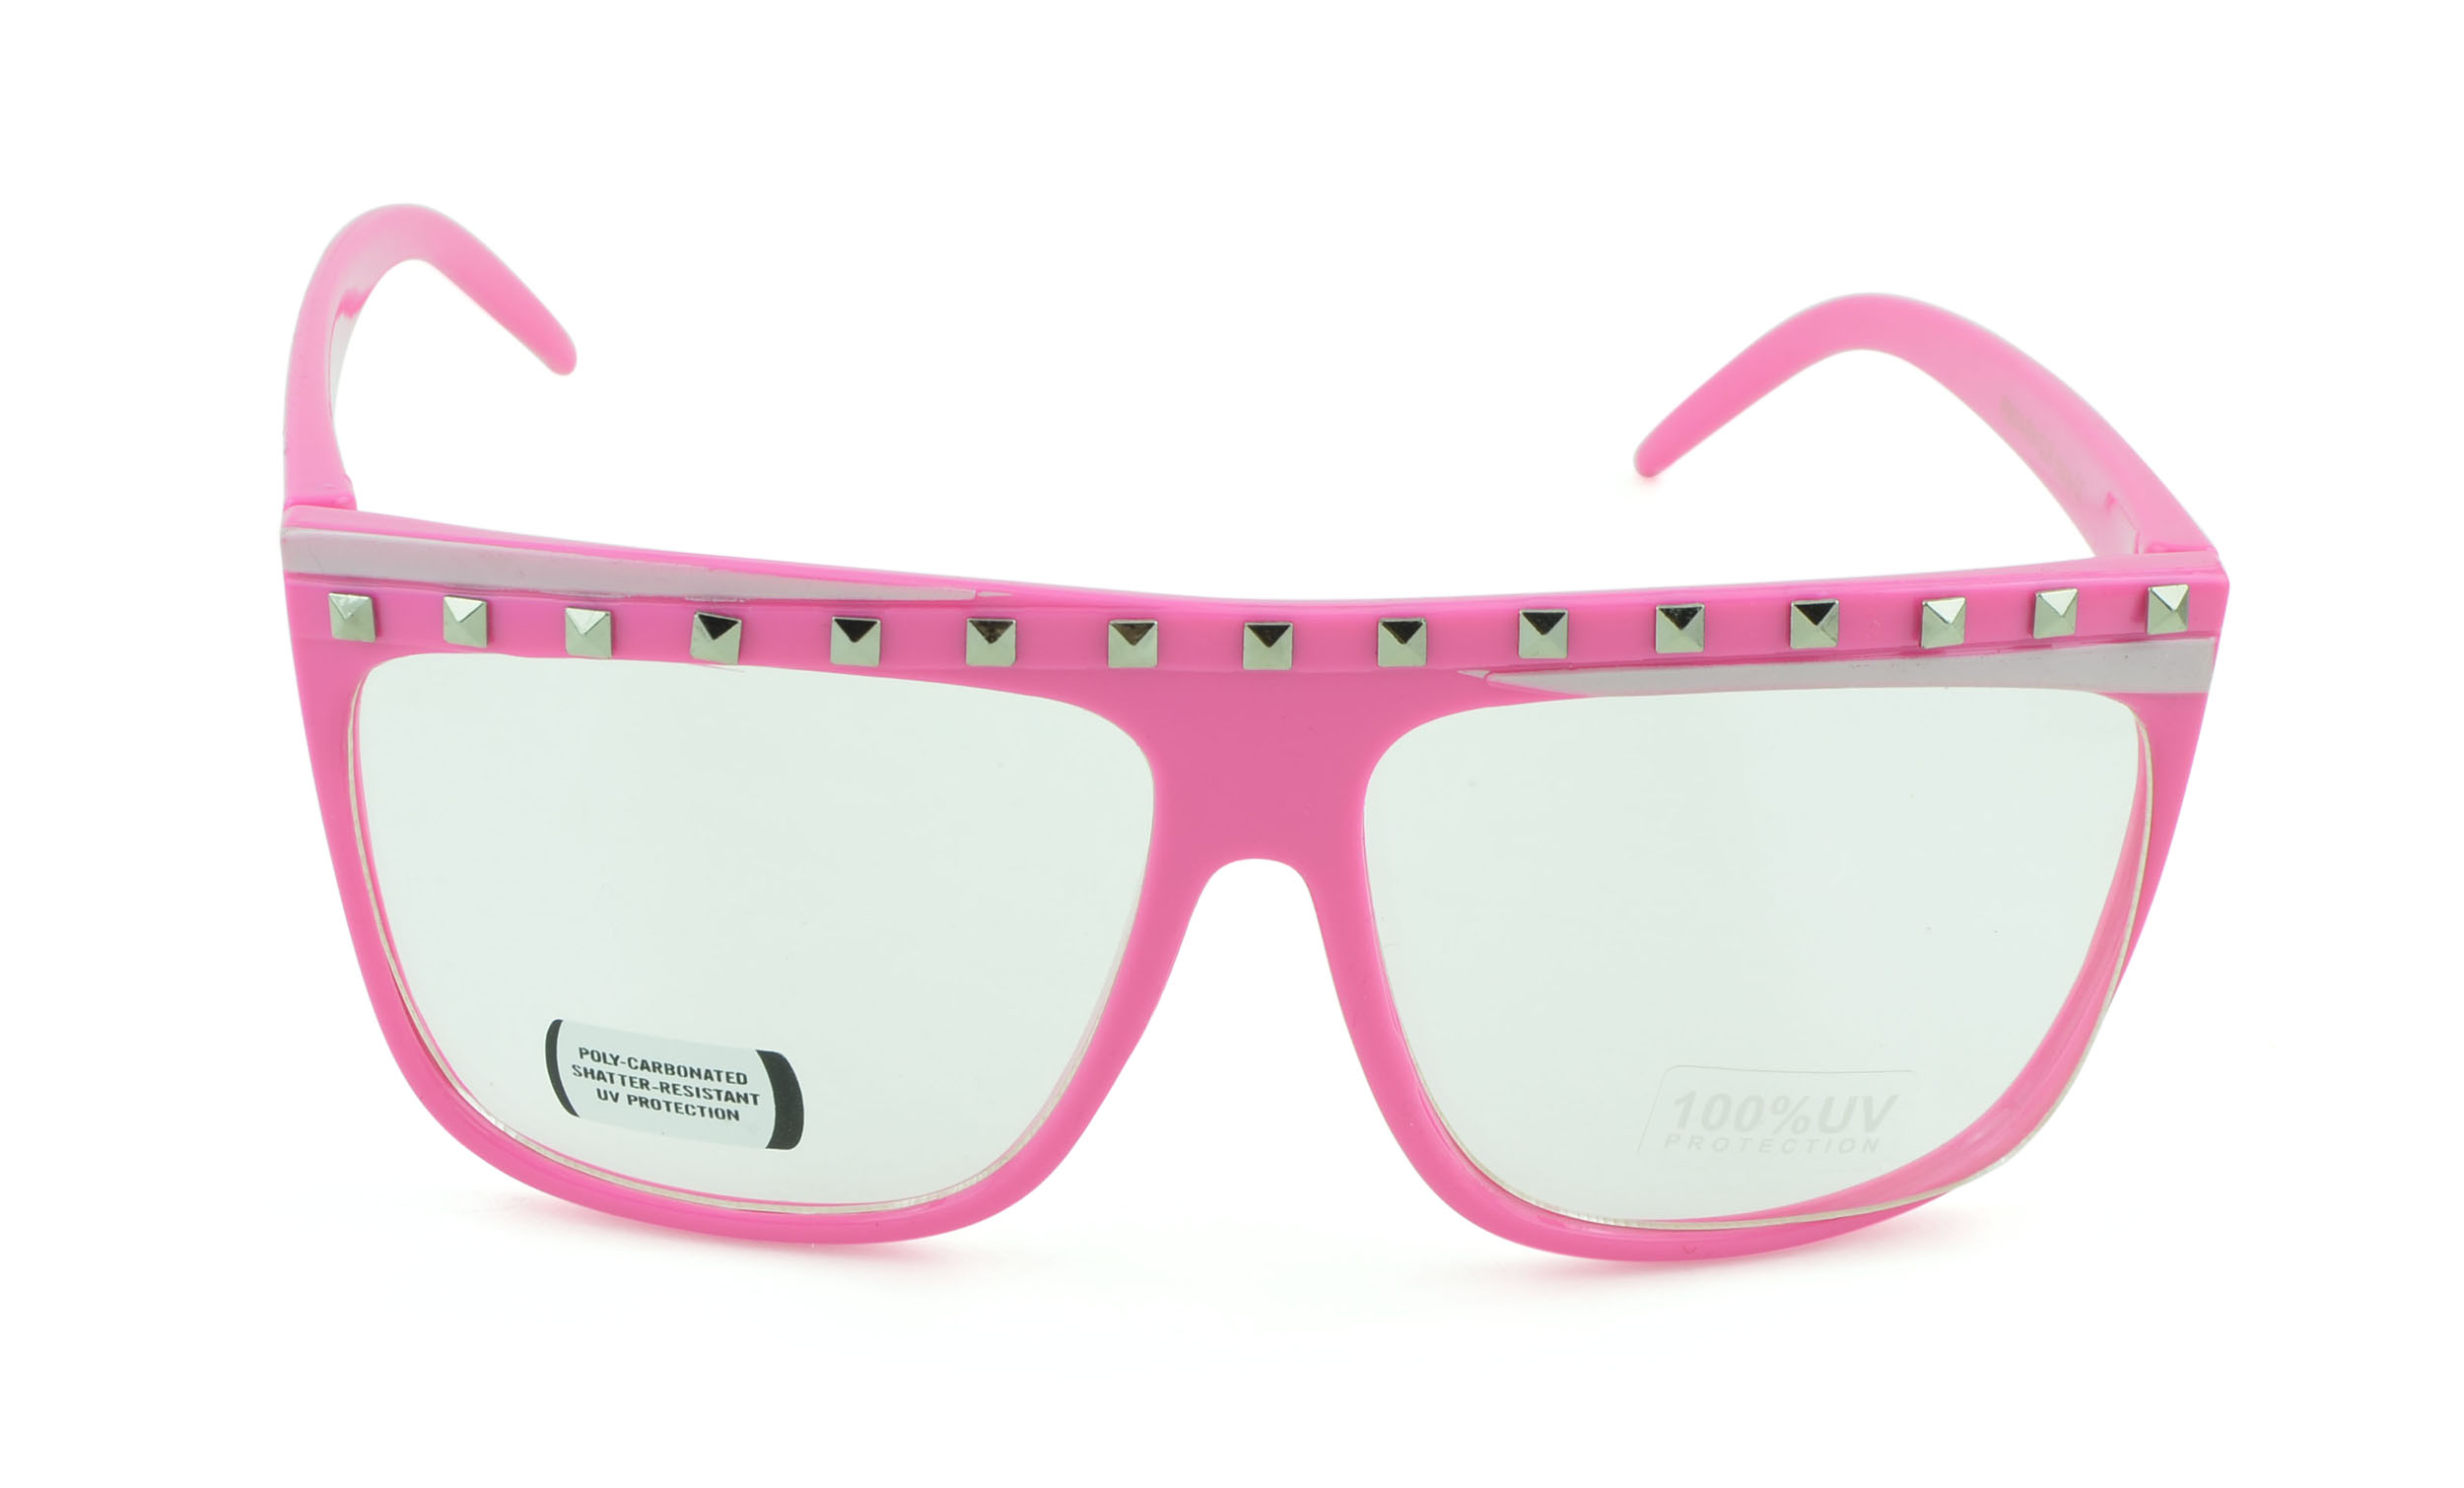 Belle Donne-Unisex Trendy Fun Colorful Fashion Party Sunglasses - Pink